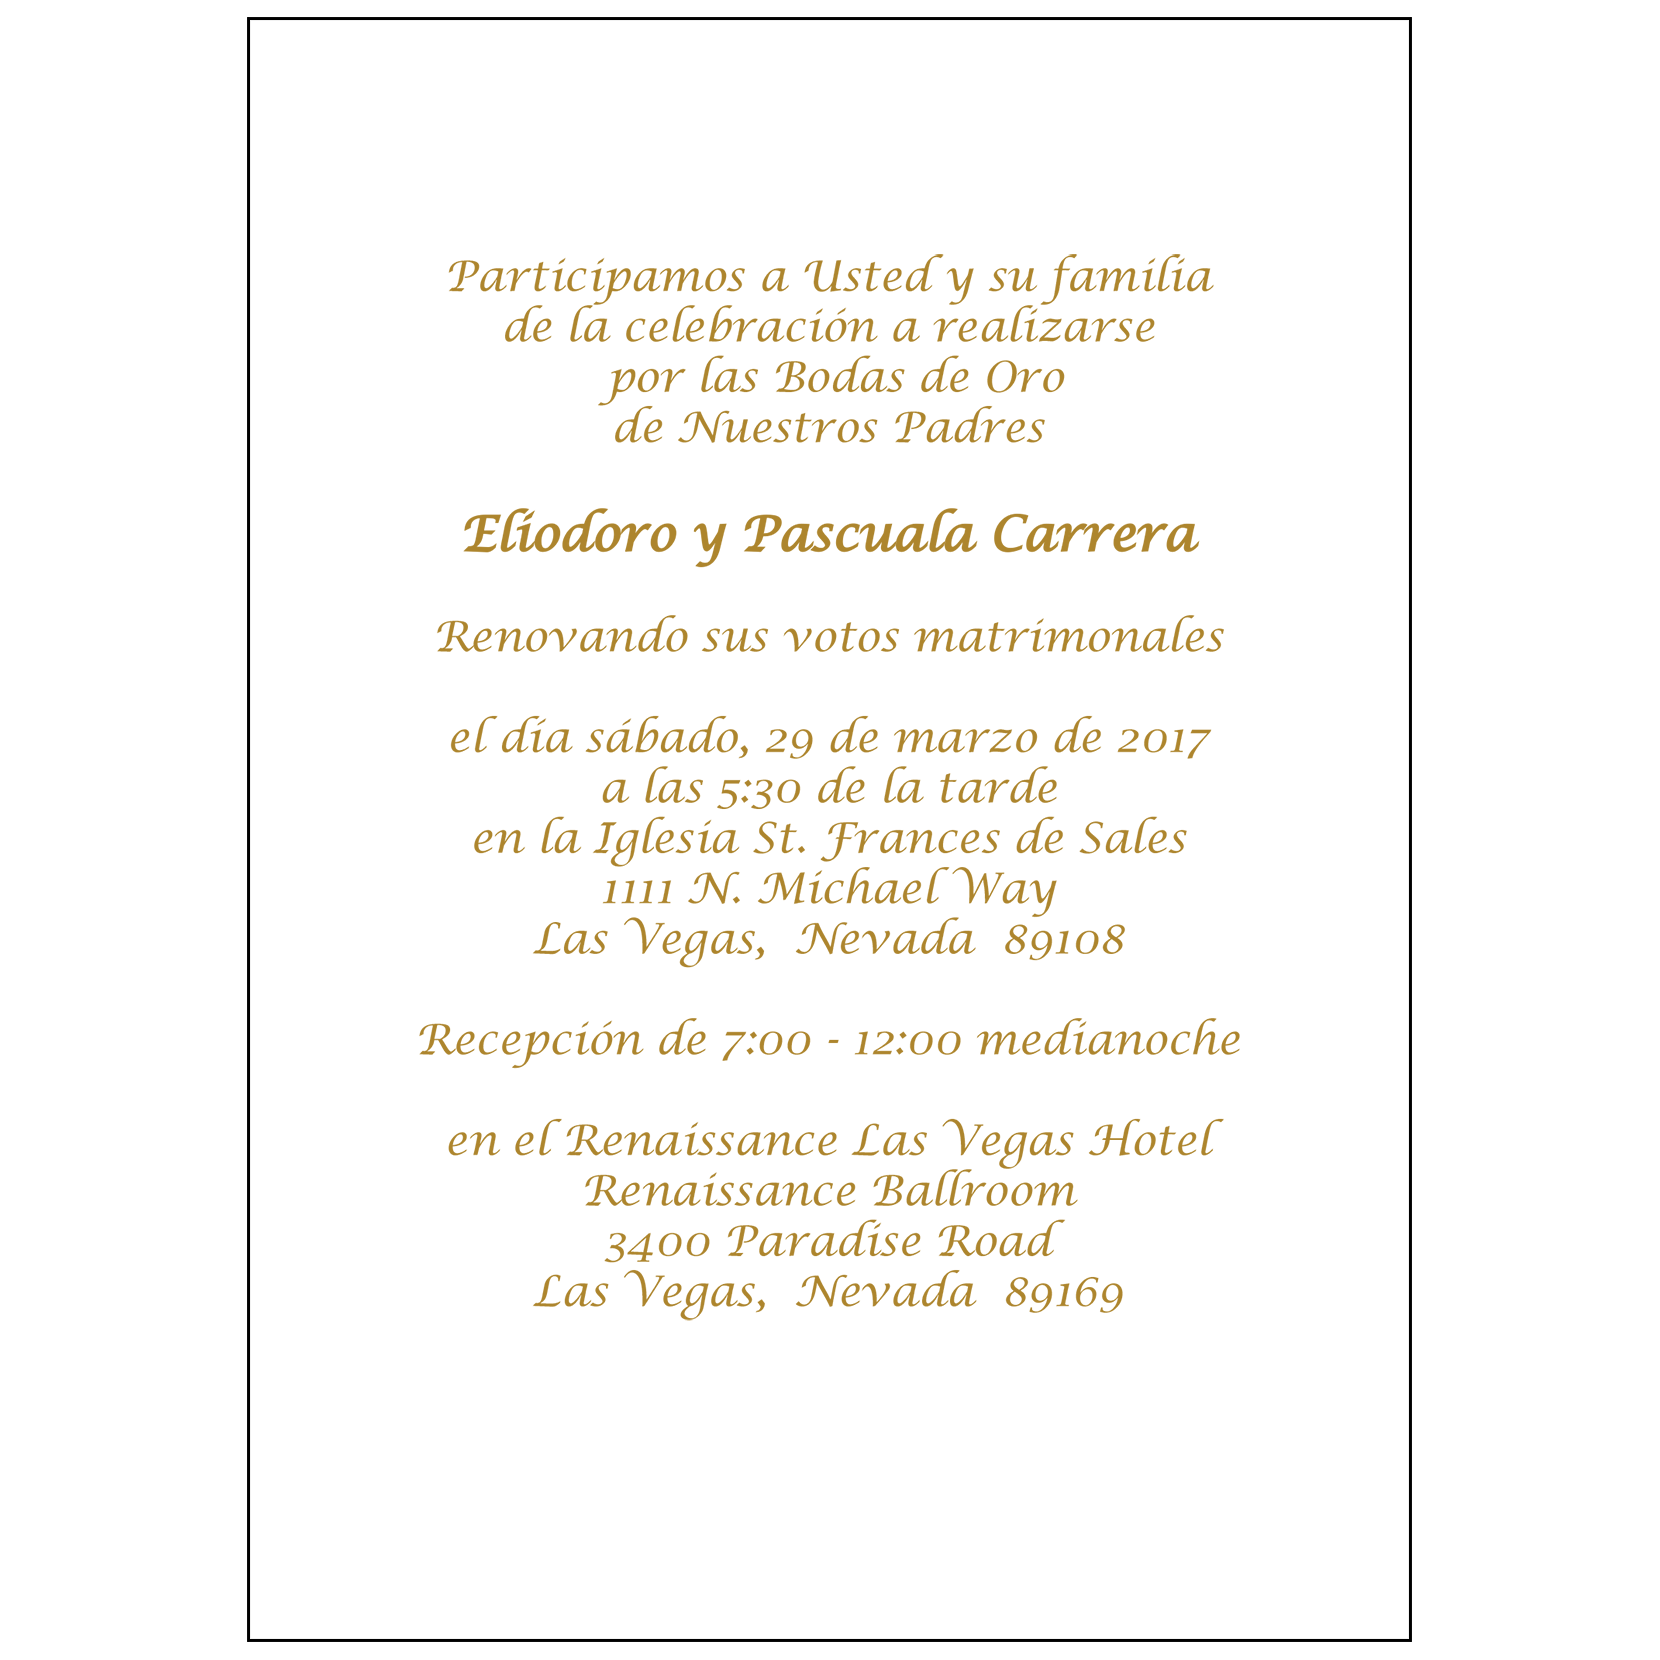 Spanish wedding anniversary party invitation style 1r ipv studio text inside invitation stopboris Images